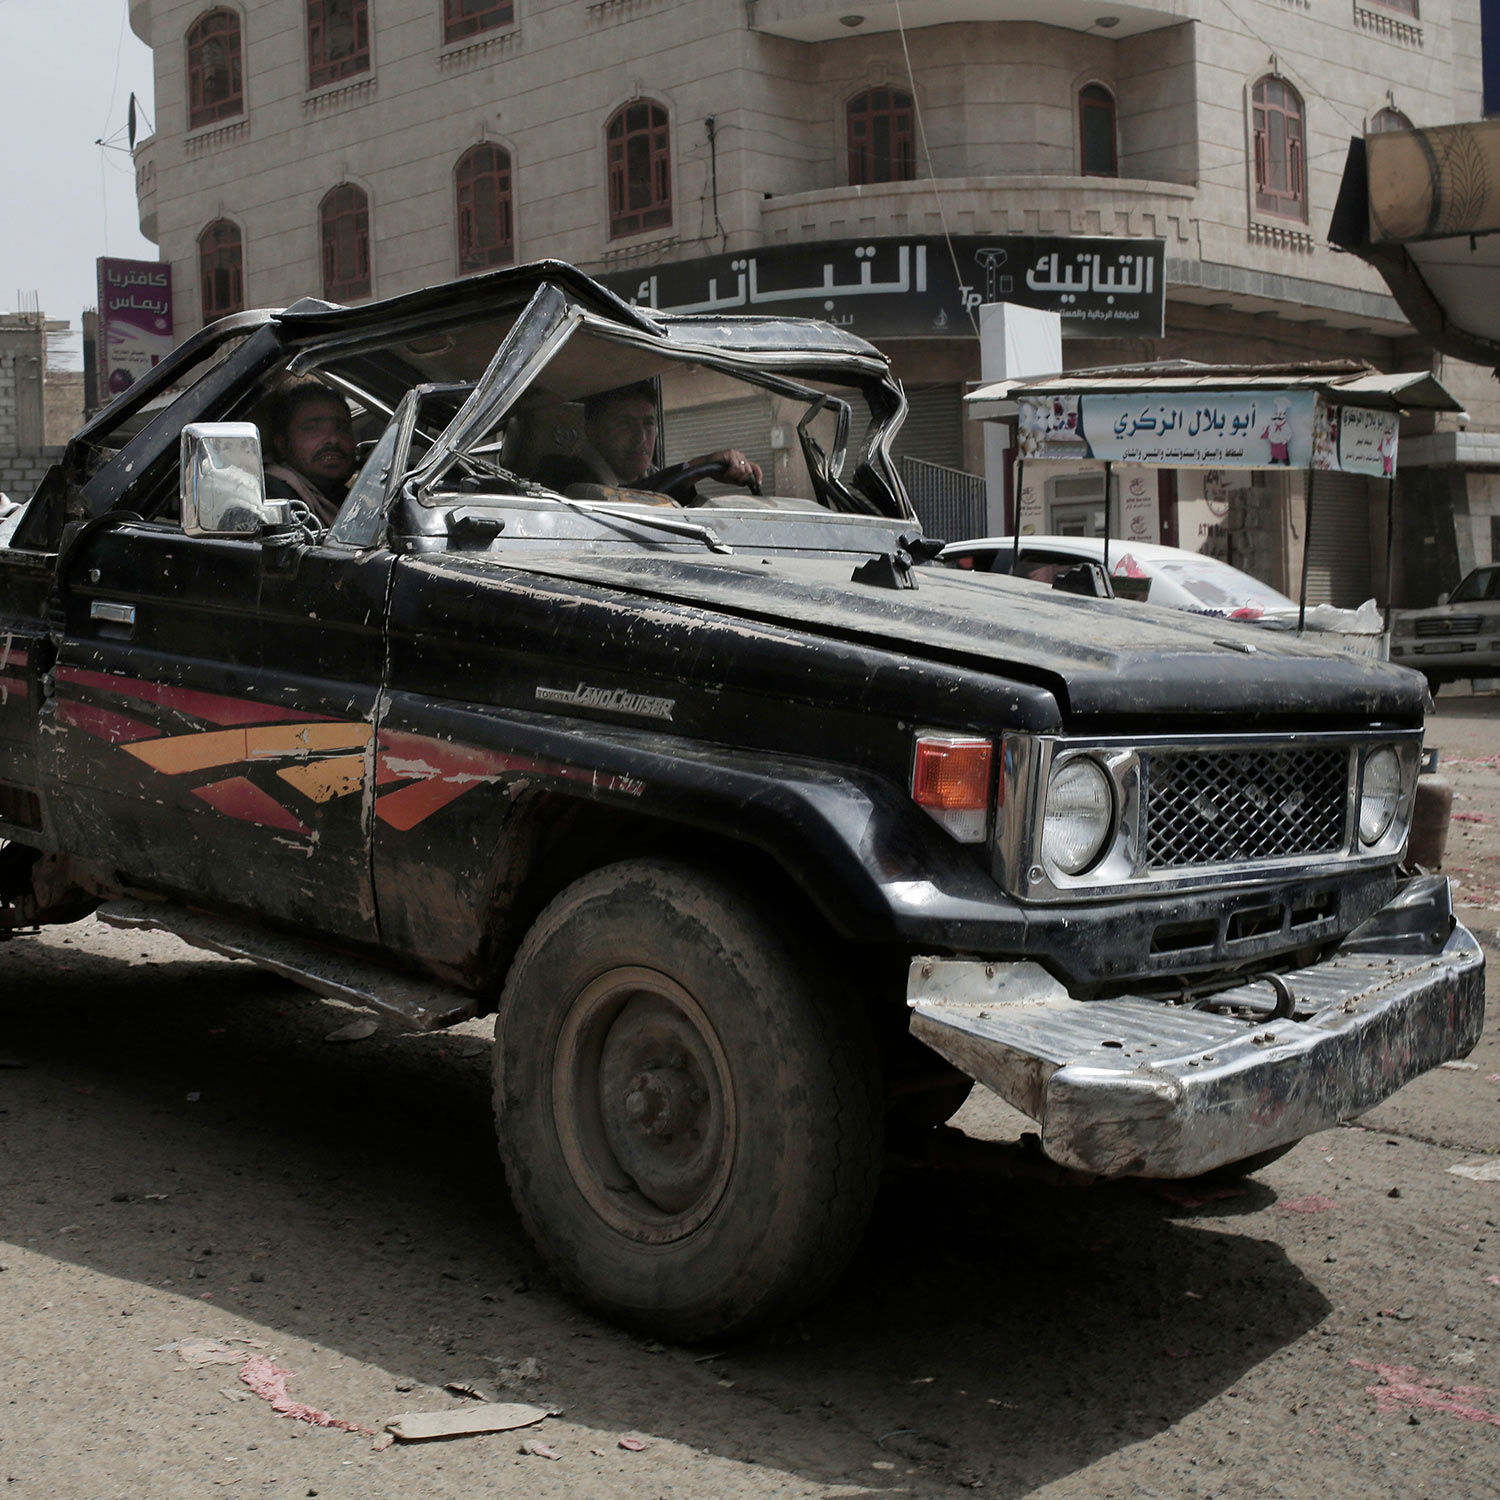 In this Aug. 3, 2018 photo, a man drives a damaged vehicle on a street in Ibb, Yemen. (AP Photo/Nariman El-Mofty)